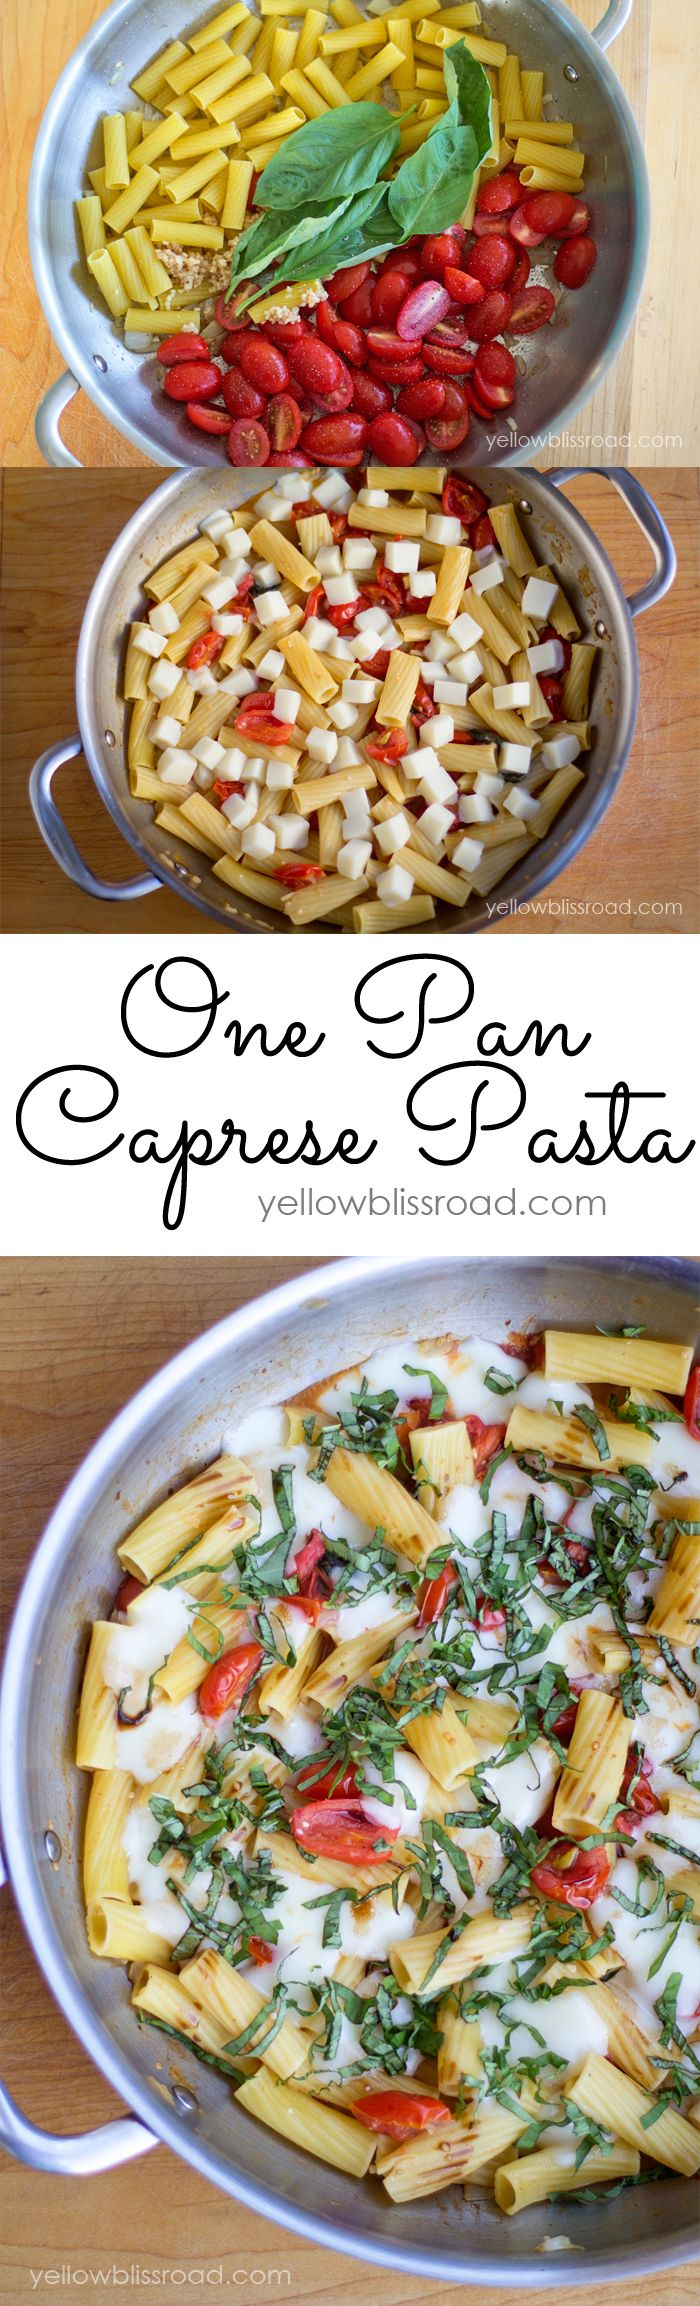 Quick and Delicious One Pan Caprese Pasta - Perfect for a busy weeknight meal or a late night craving - whoa! yum! #saucesome